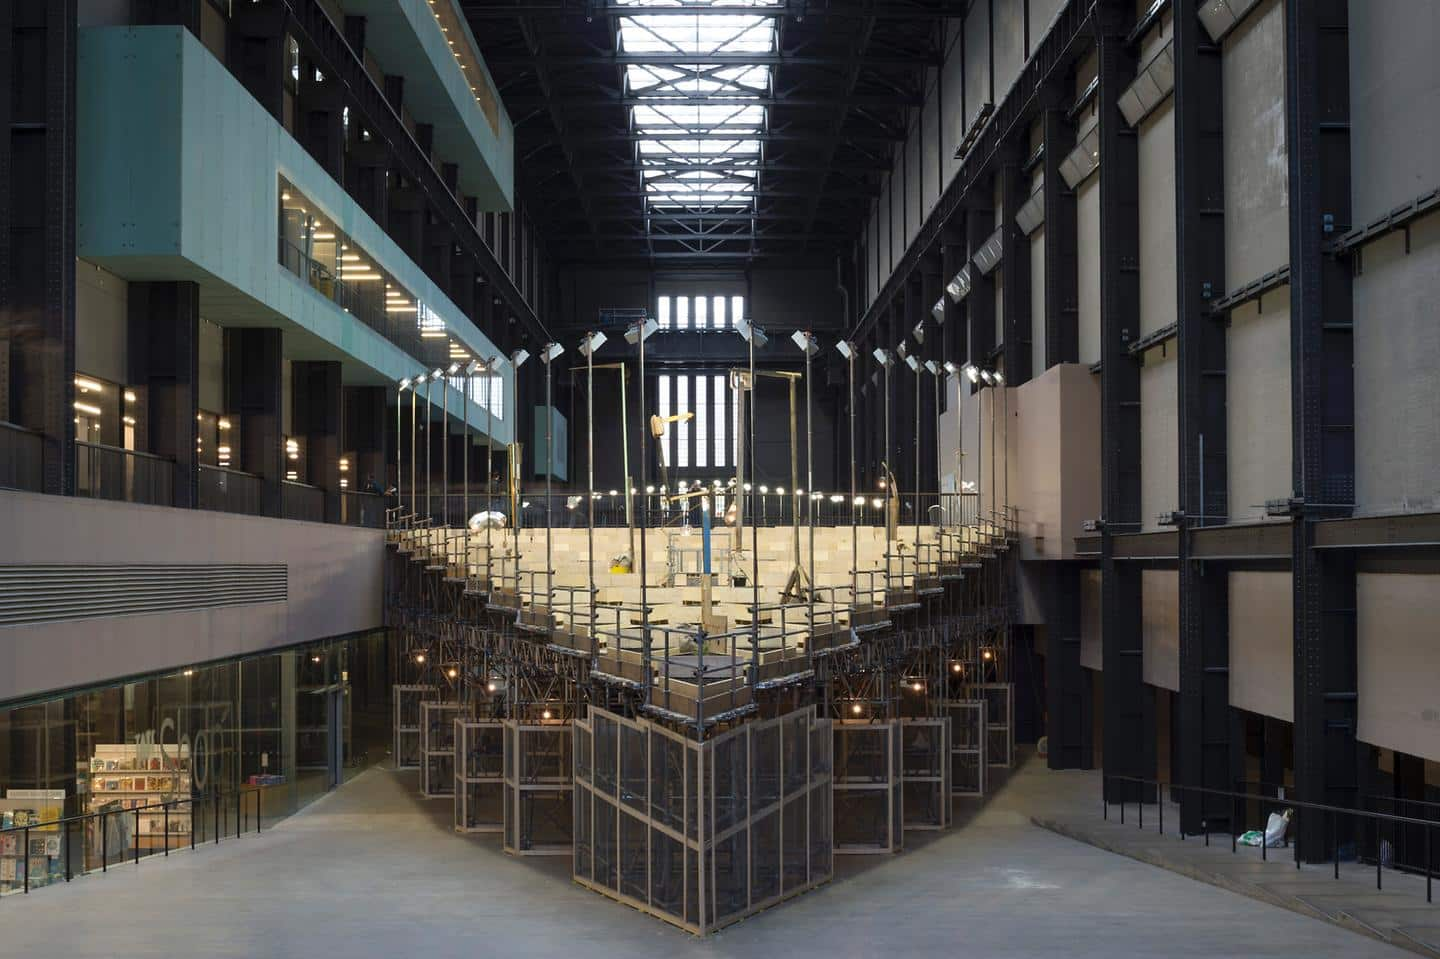 Hyundai Motor Announces the Opening of the Inaugural Hyundai Commission at Tate Modern (4)